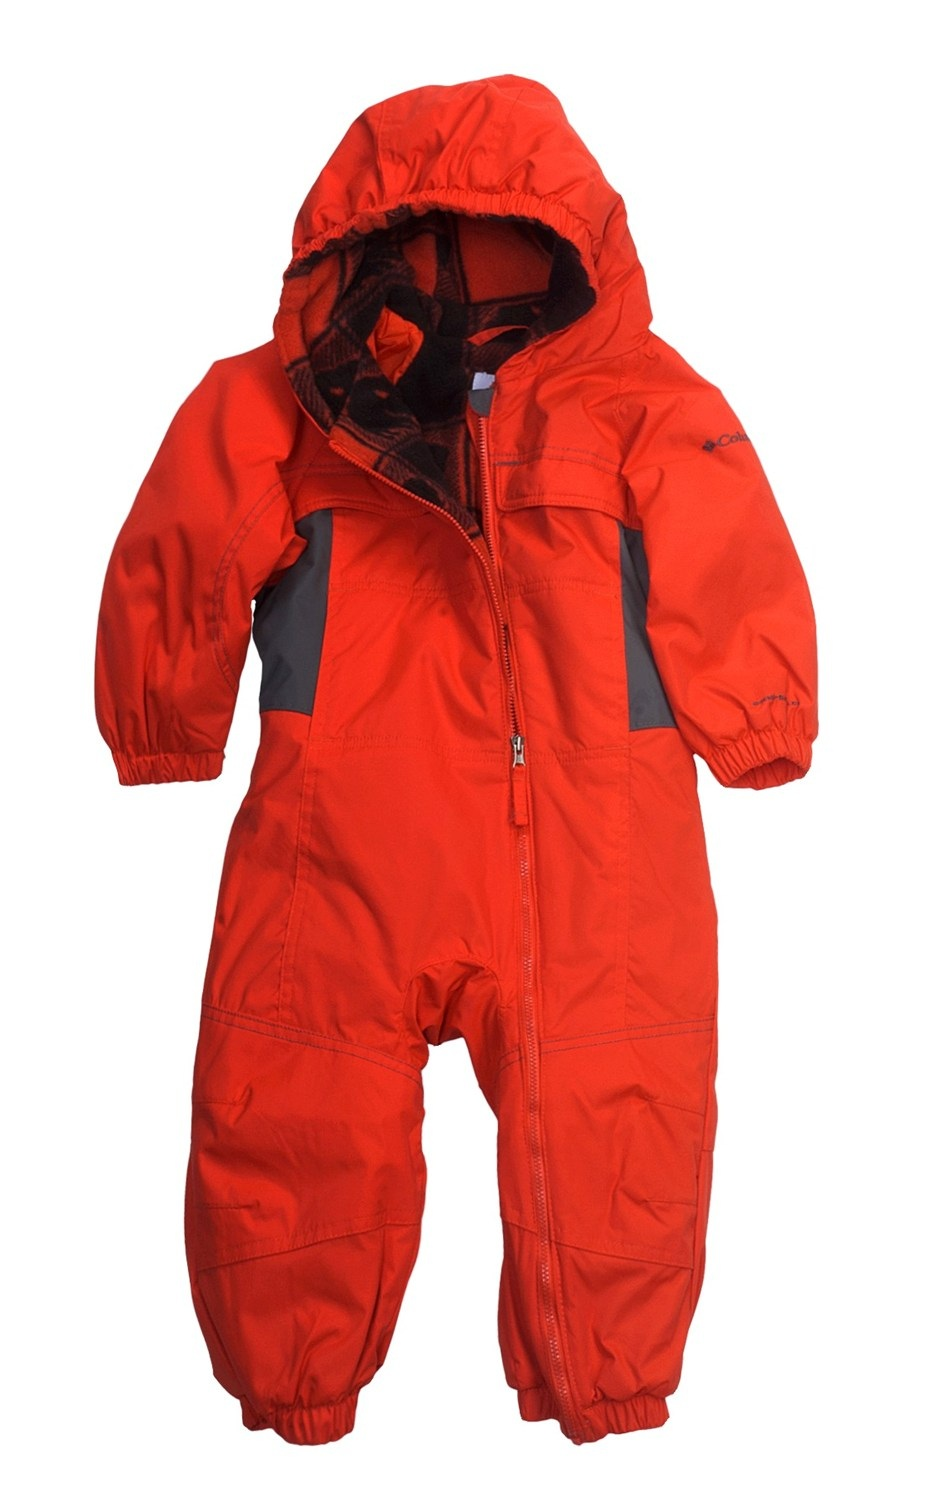 columbia-sportswear-rope-tow-rider-snow-suit-insulated-for-infants_03